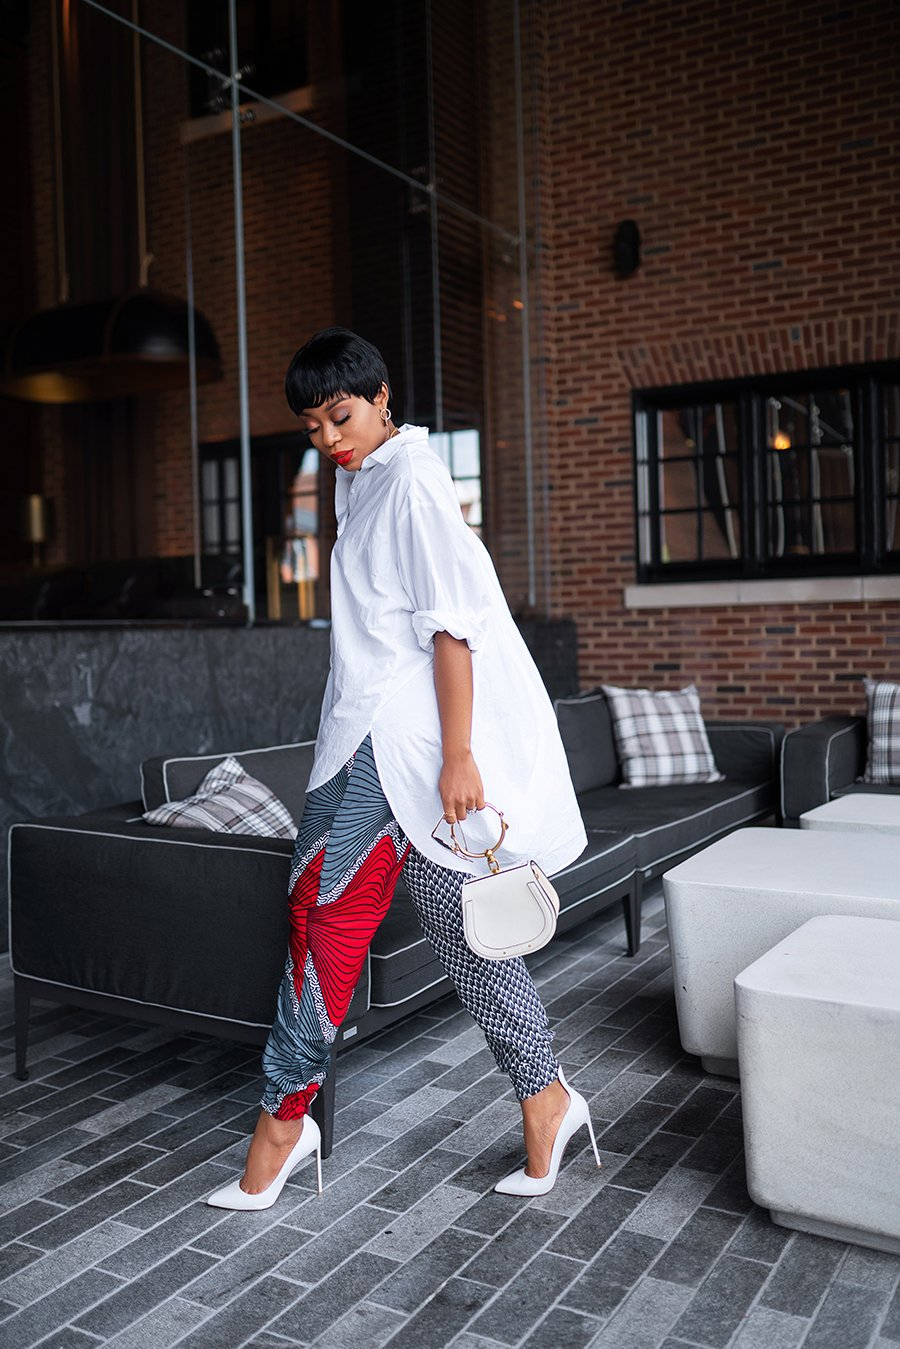 stella-adewunmi-of-jadore-fashion-blog-shares-chic-way-to-wear-ankara-joggers-oversized-white-shirt-white-pumps